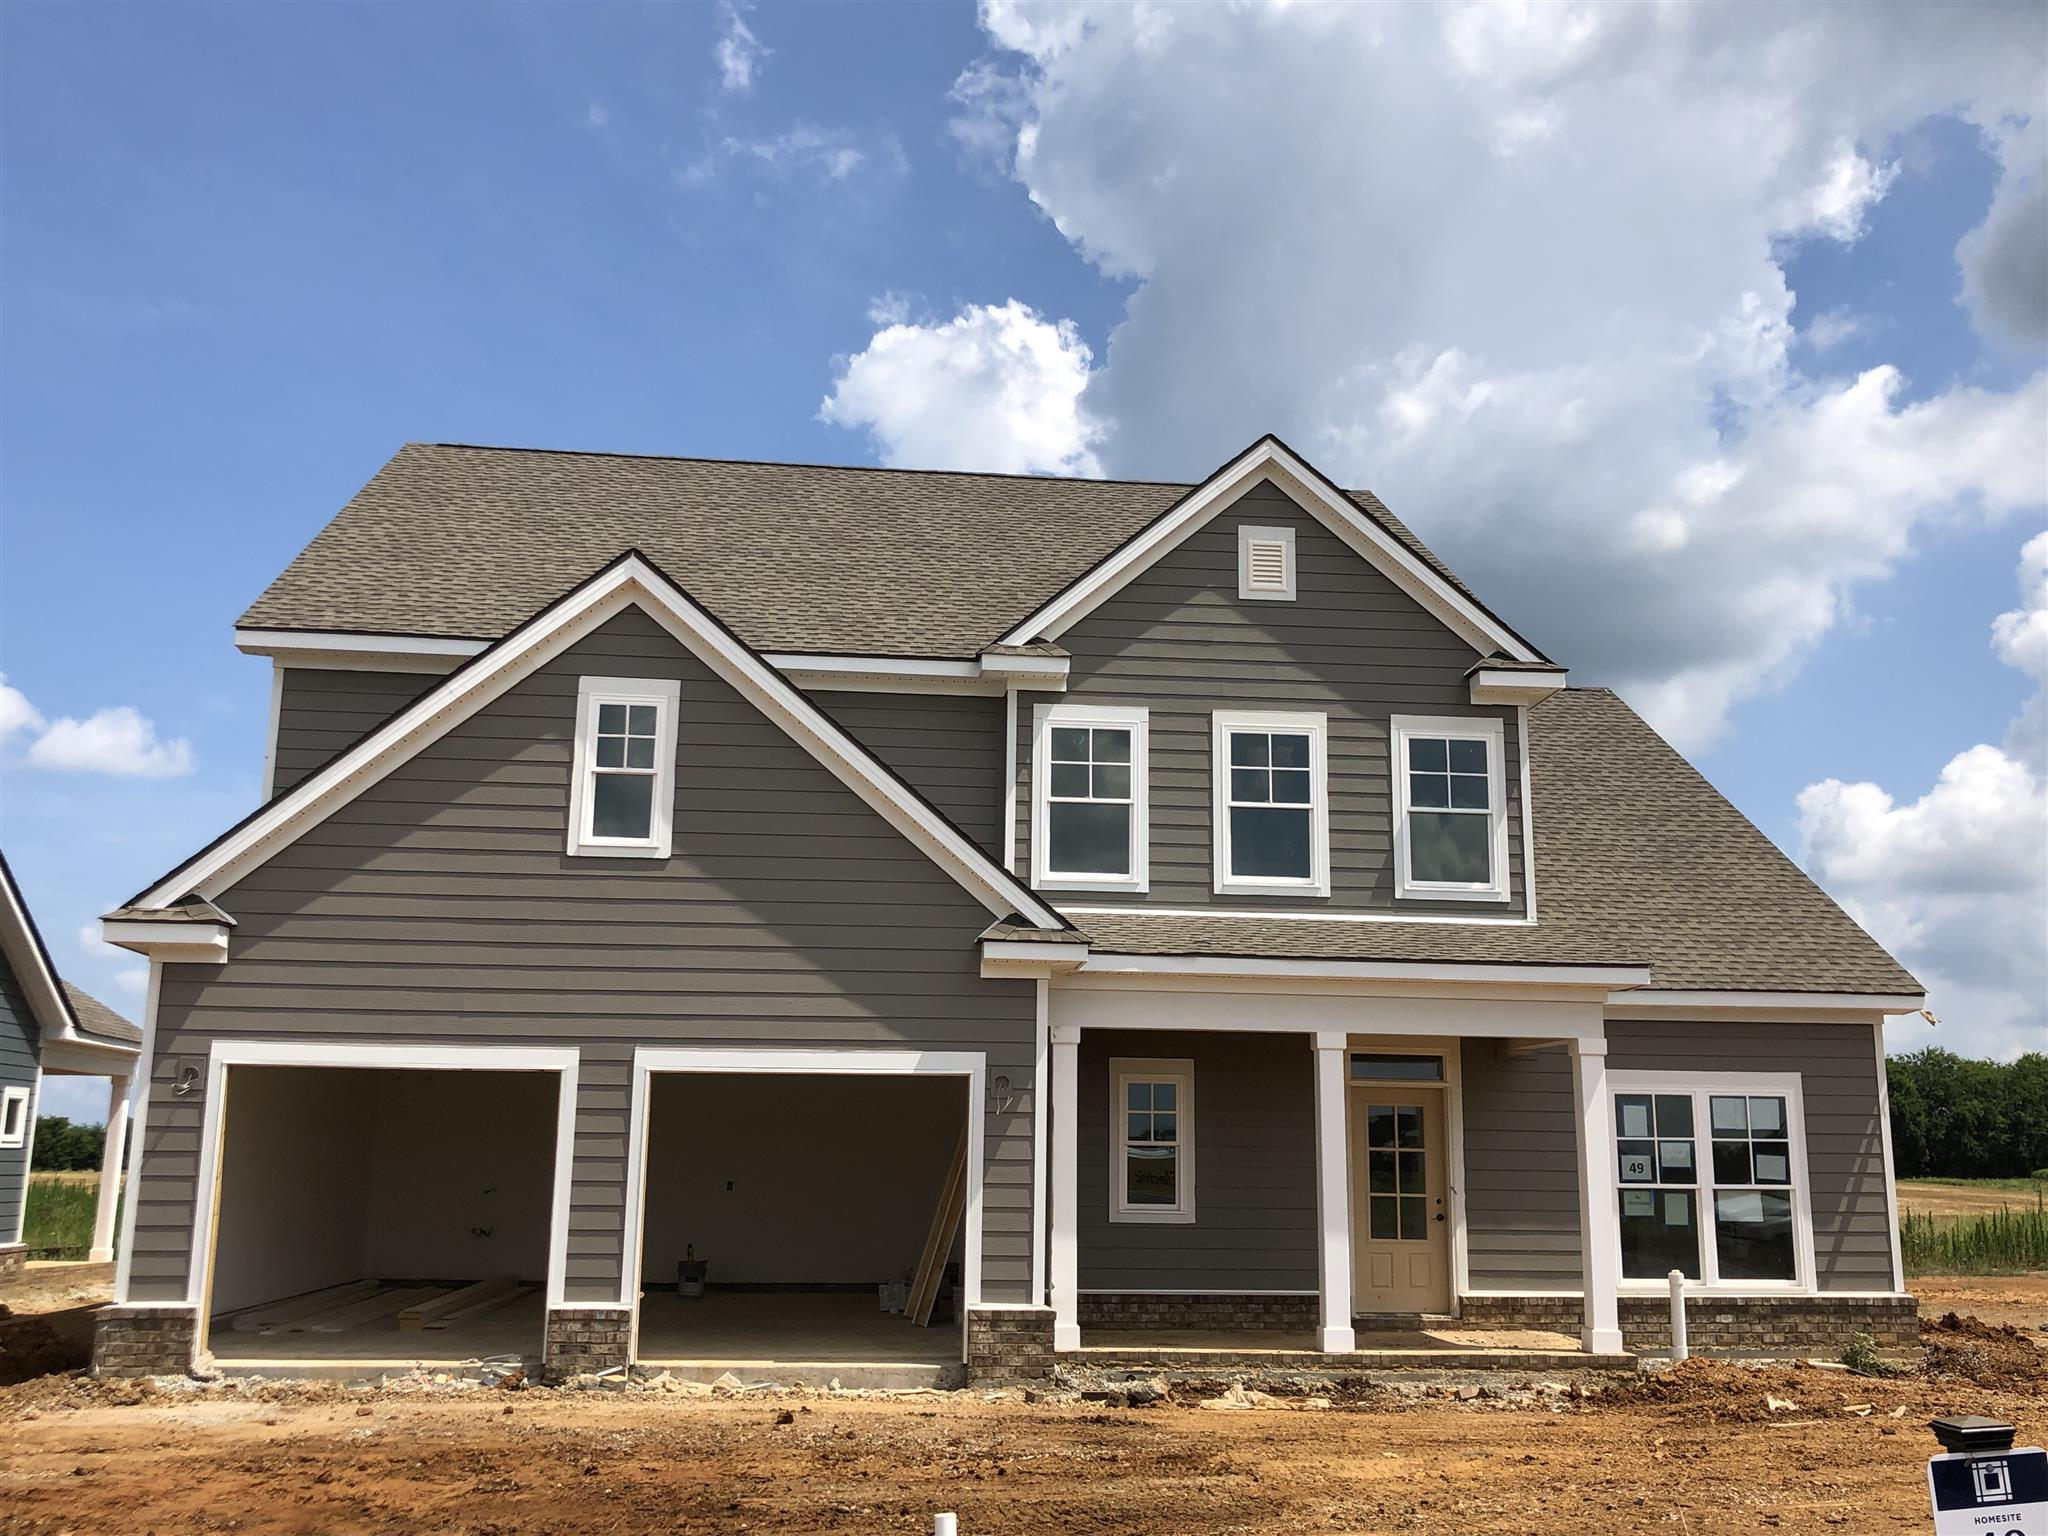 New Homes For Sale in Blackman High | More Murfreesboro